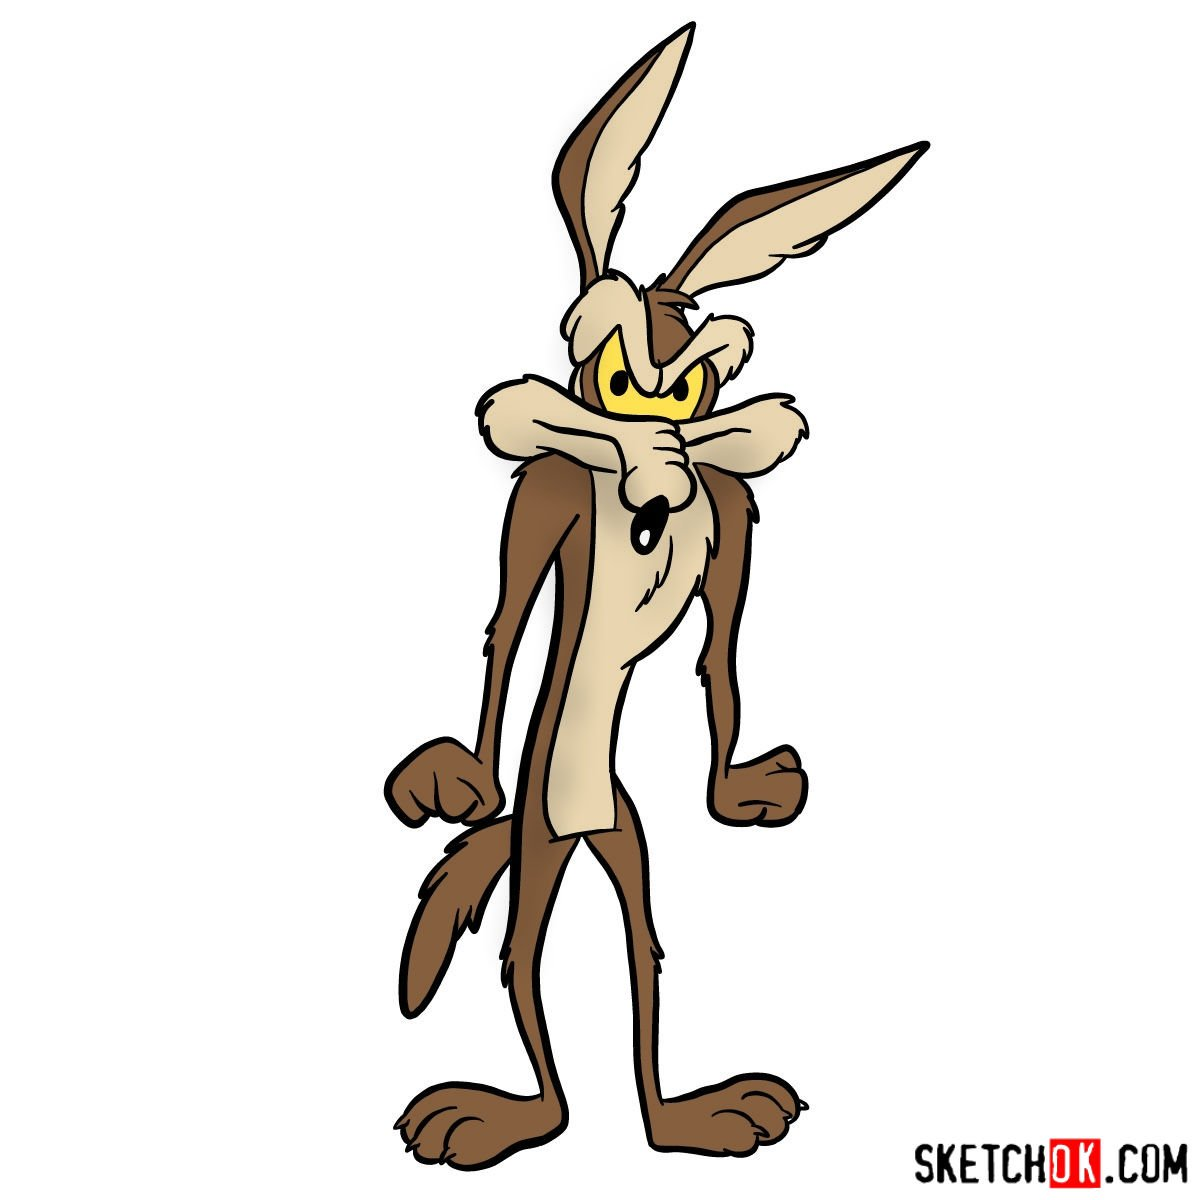 How to draw Wile E. Coyote